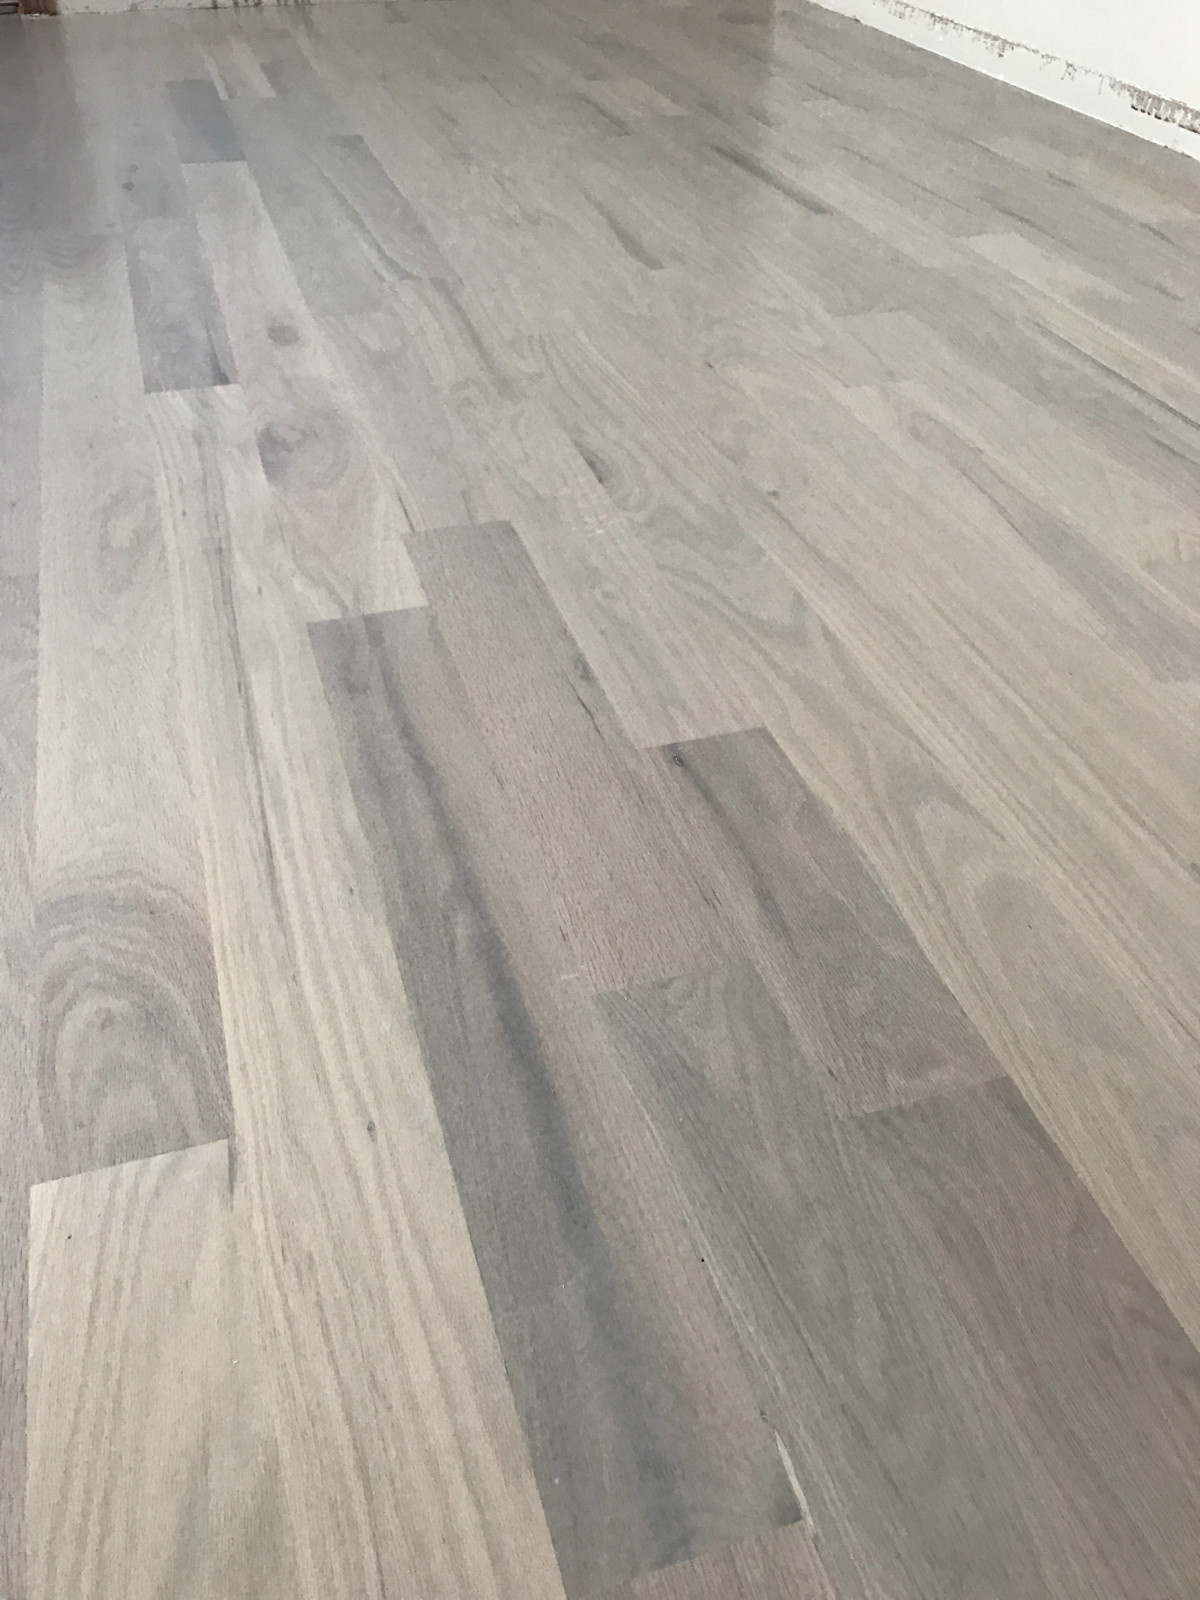 BLOG: Know Your Wood Flooring Options